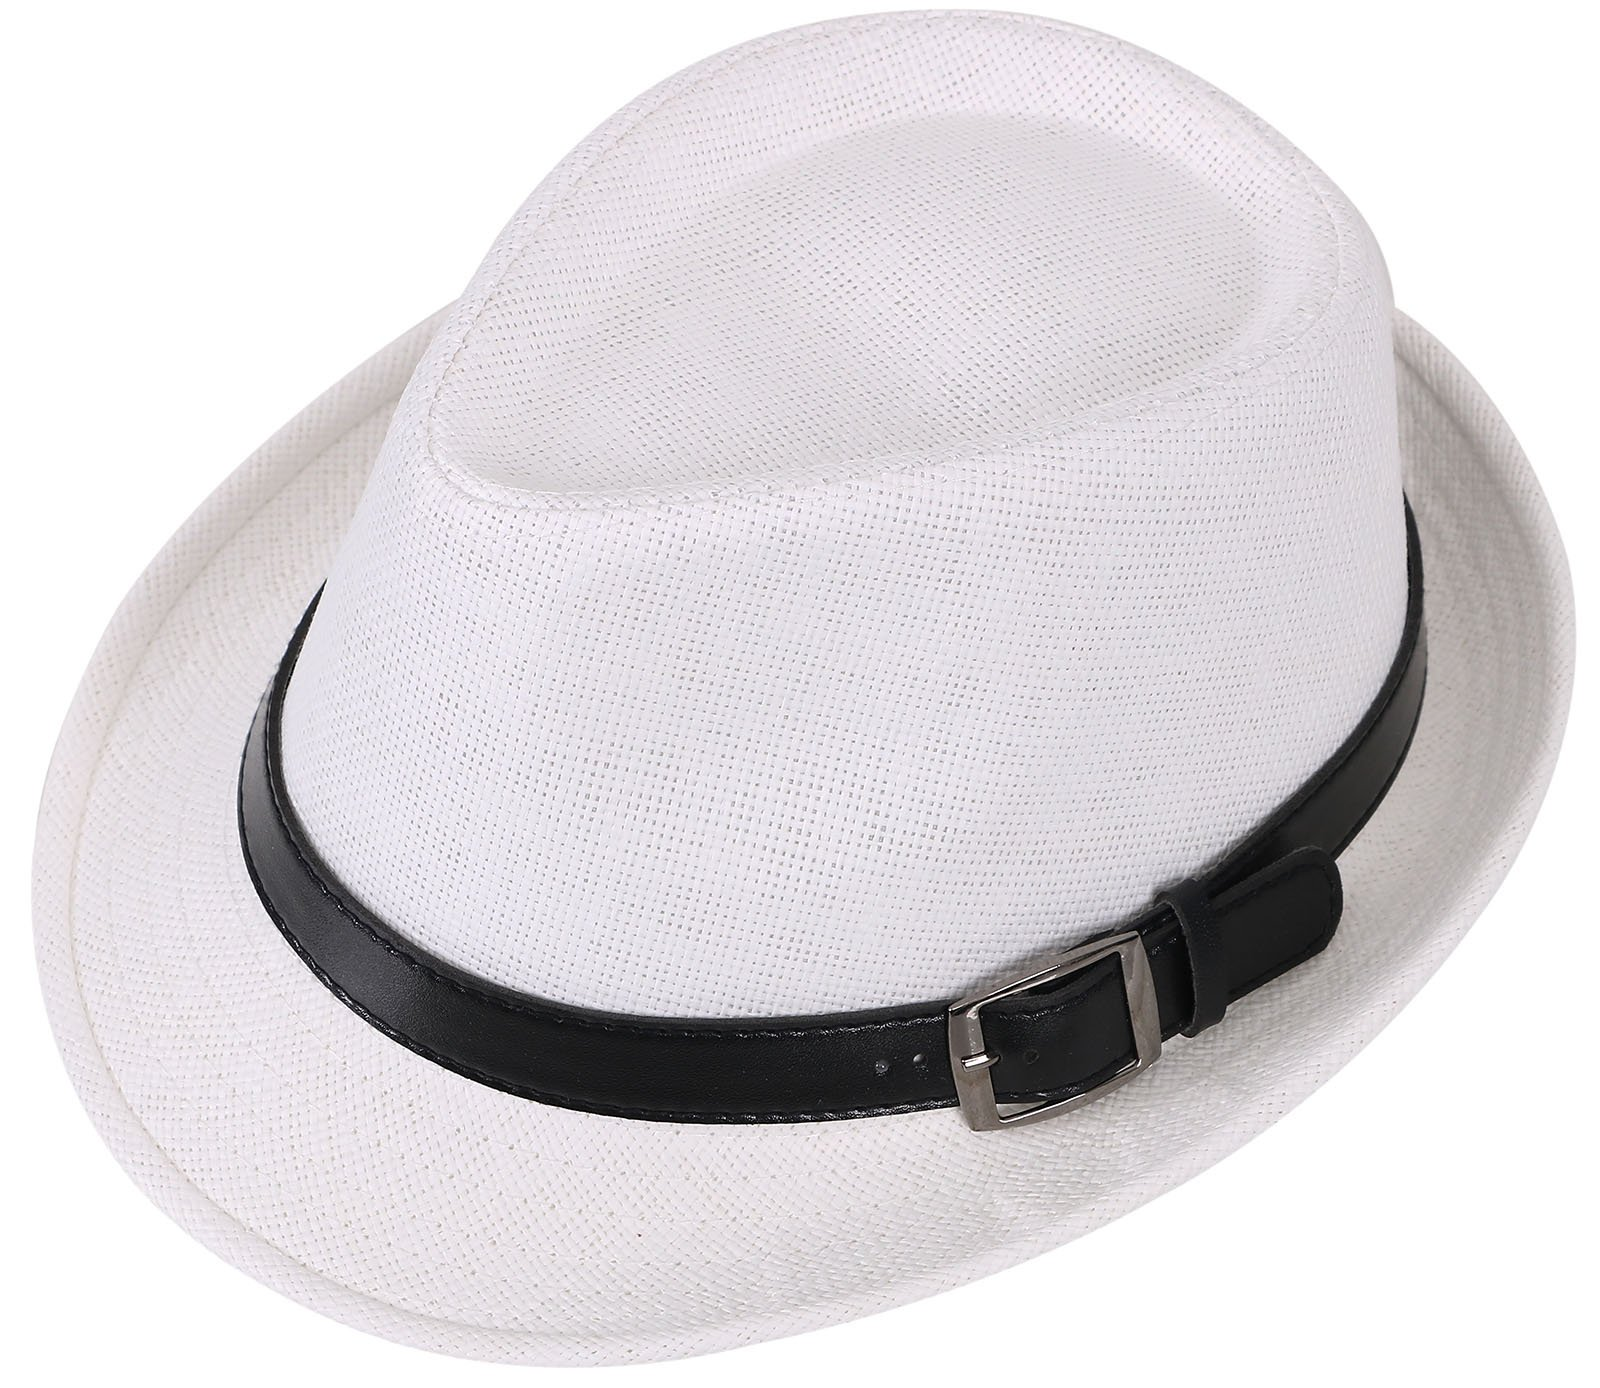 Harcadian Men's/Womens Straw Fedora Trilby Hat Beach Sun Hats White Hat Black Belt 59cm